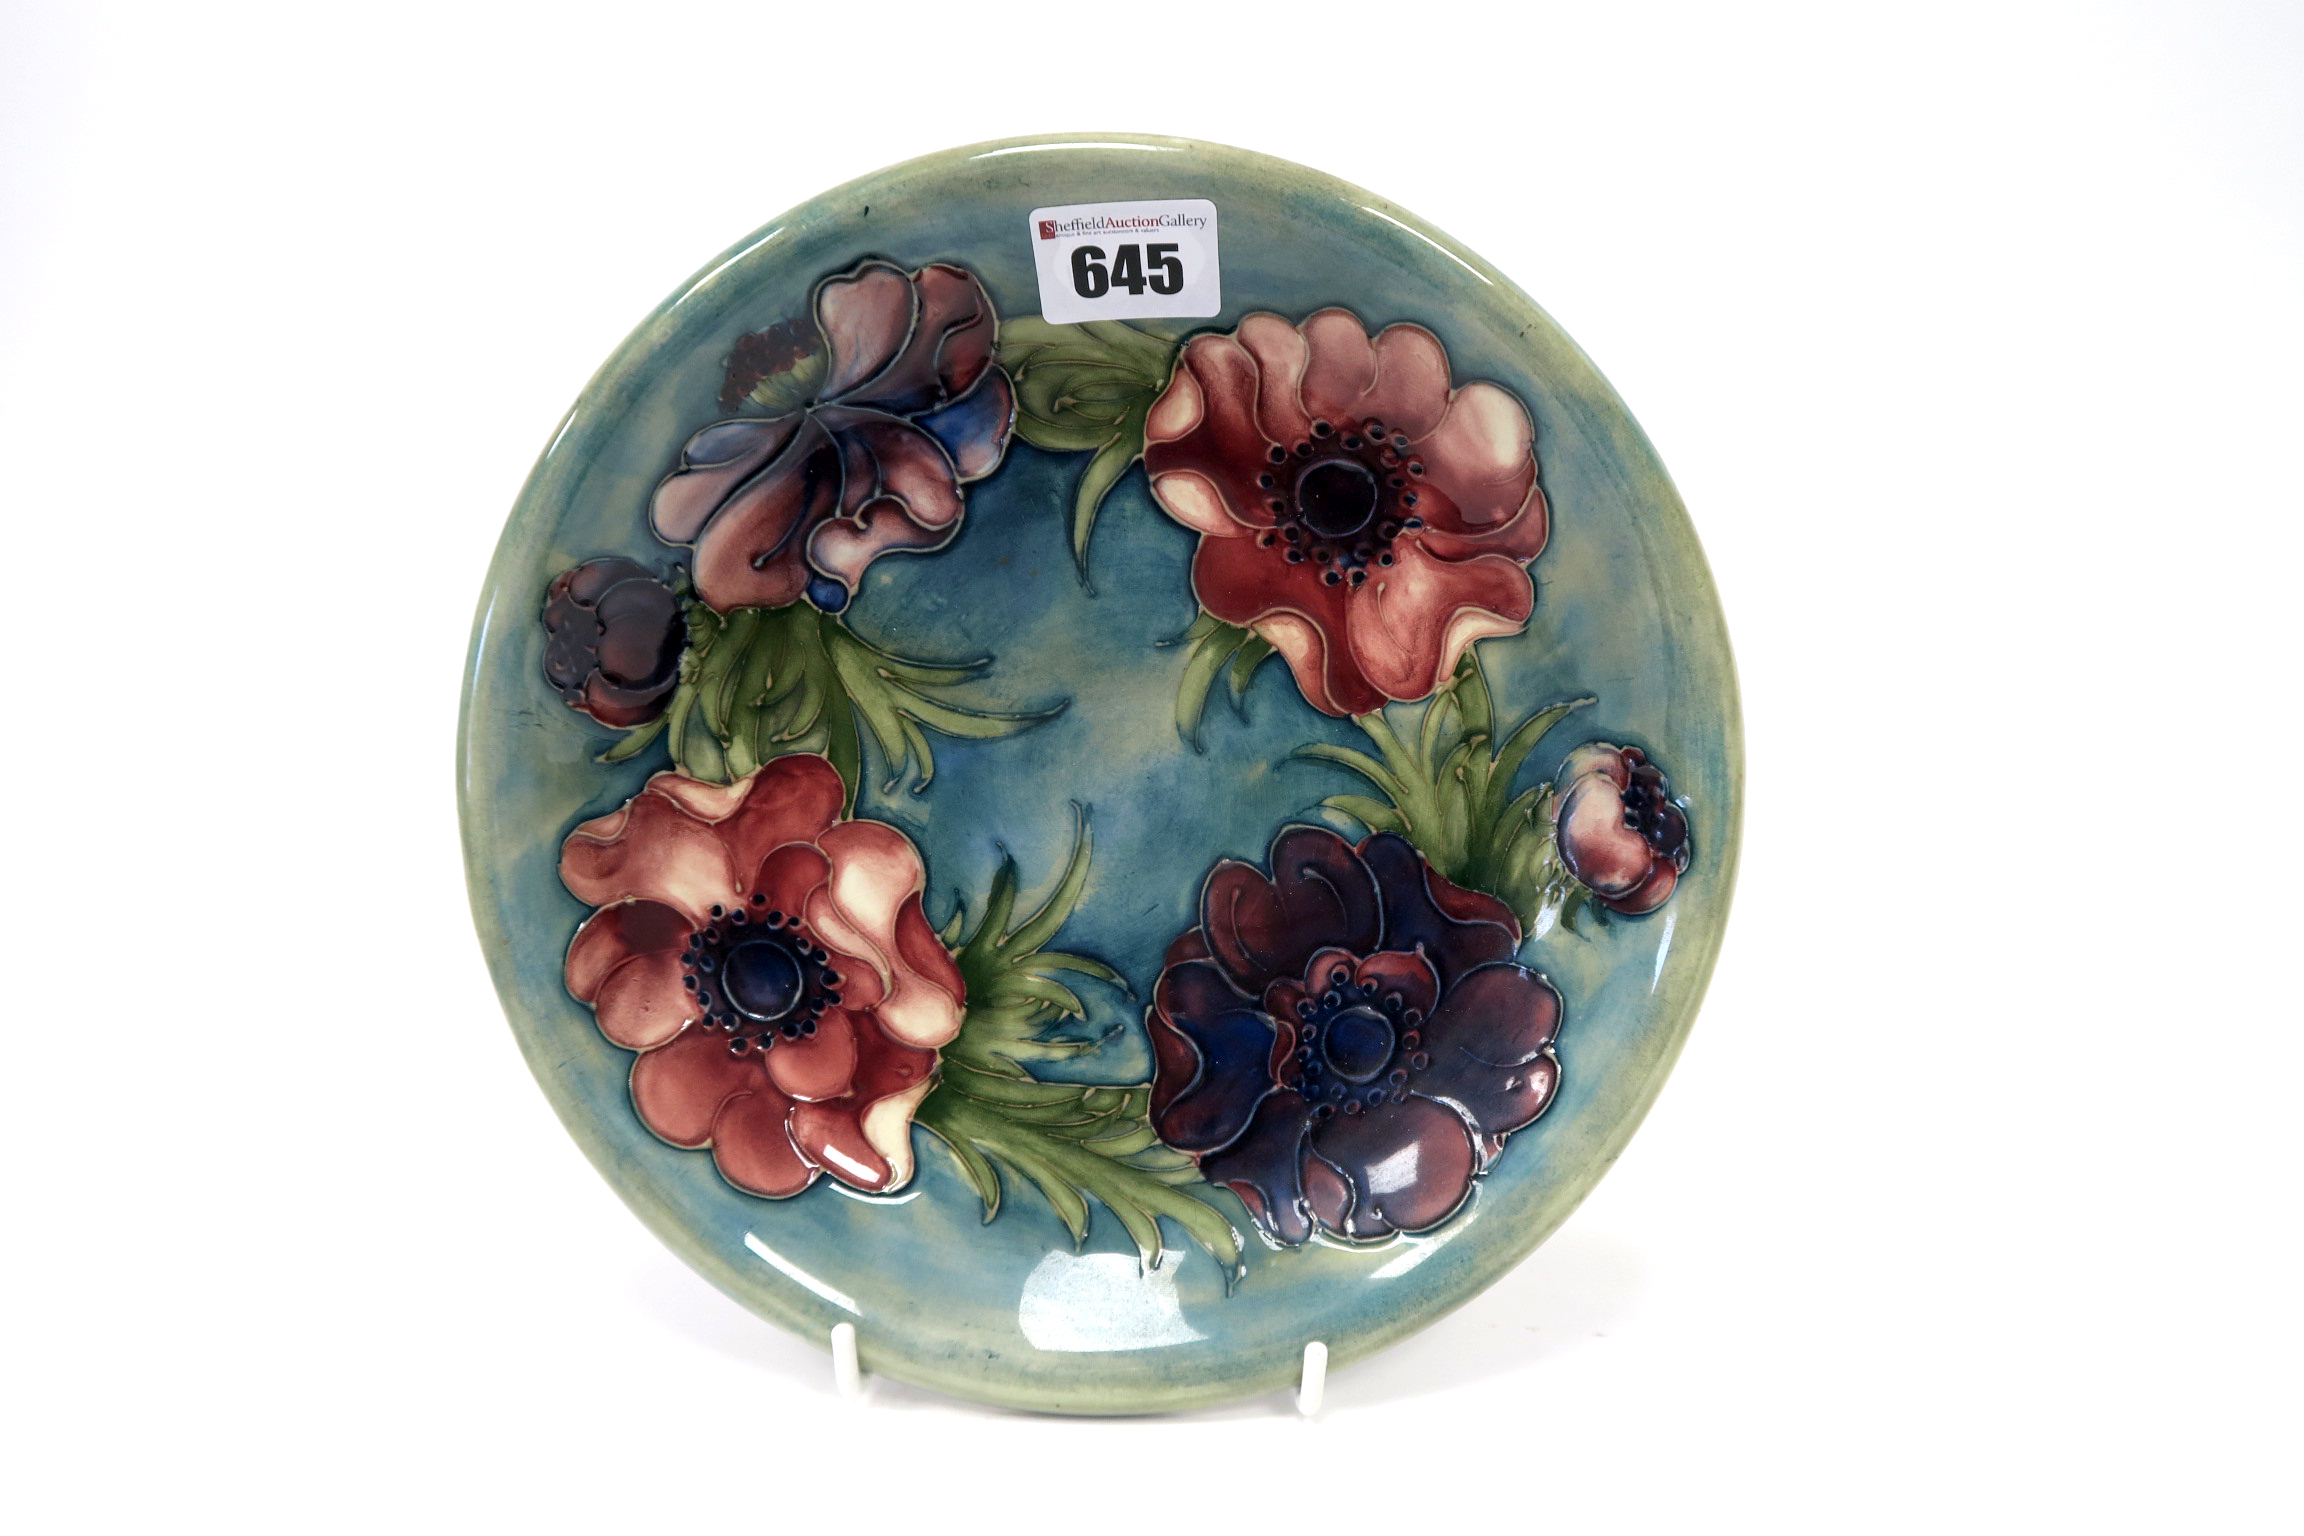 Lot 645 - A Mid XX Century Moorcroft Pottery Dish, of circular form, painted in the 'Anemone' pattern with